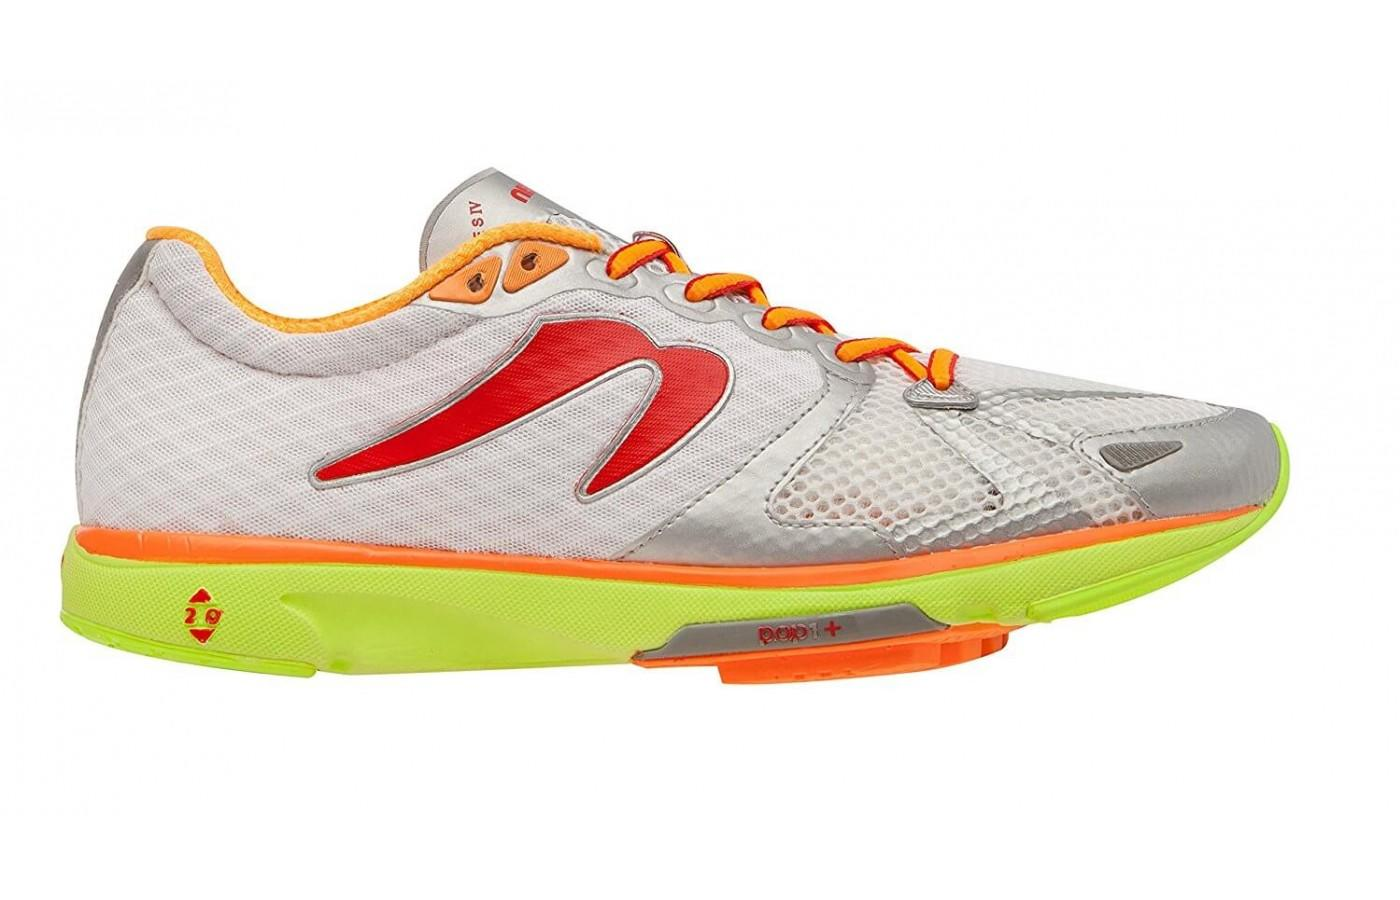 Newton Distance S IV is adorned with bright colors